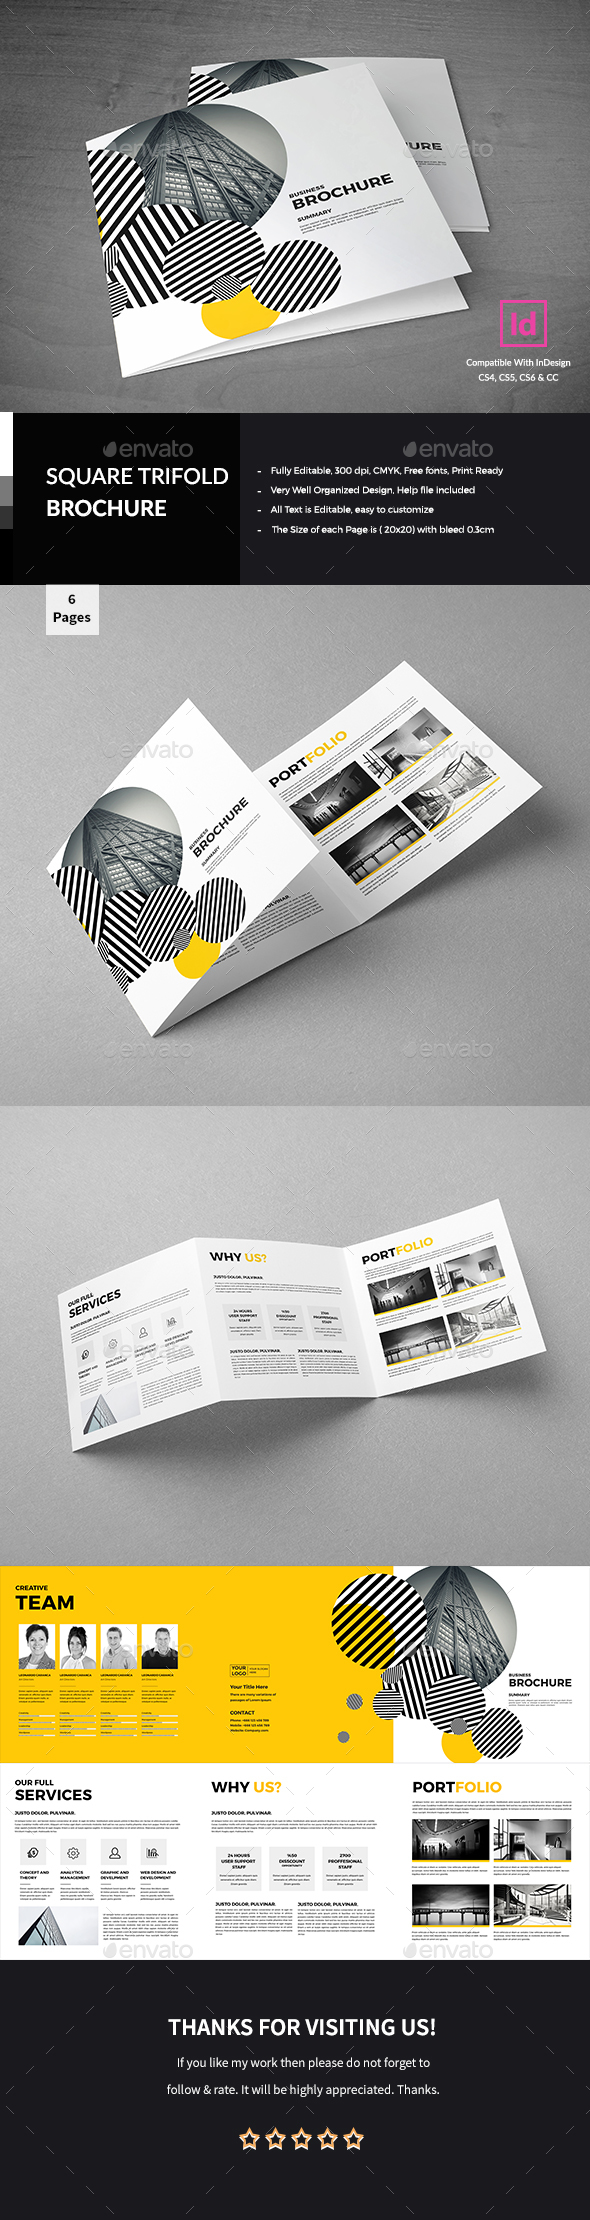 Corporate Square Trifold Brochure - Corporate Brochures